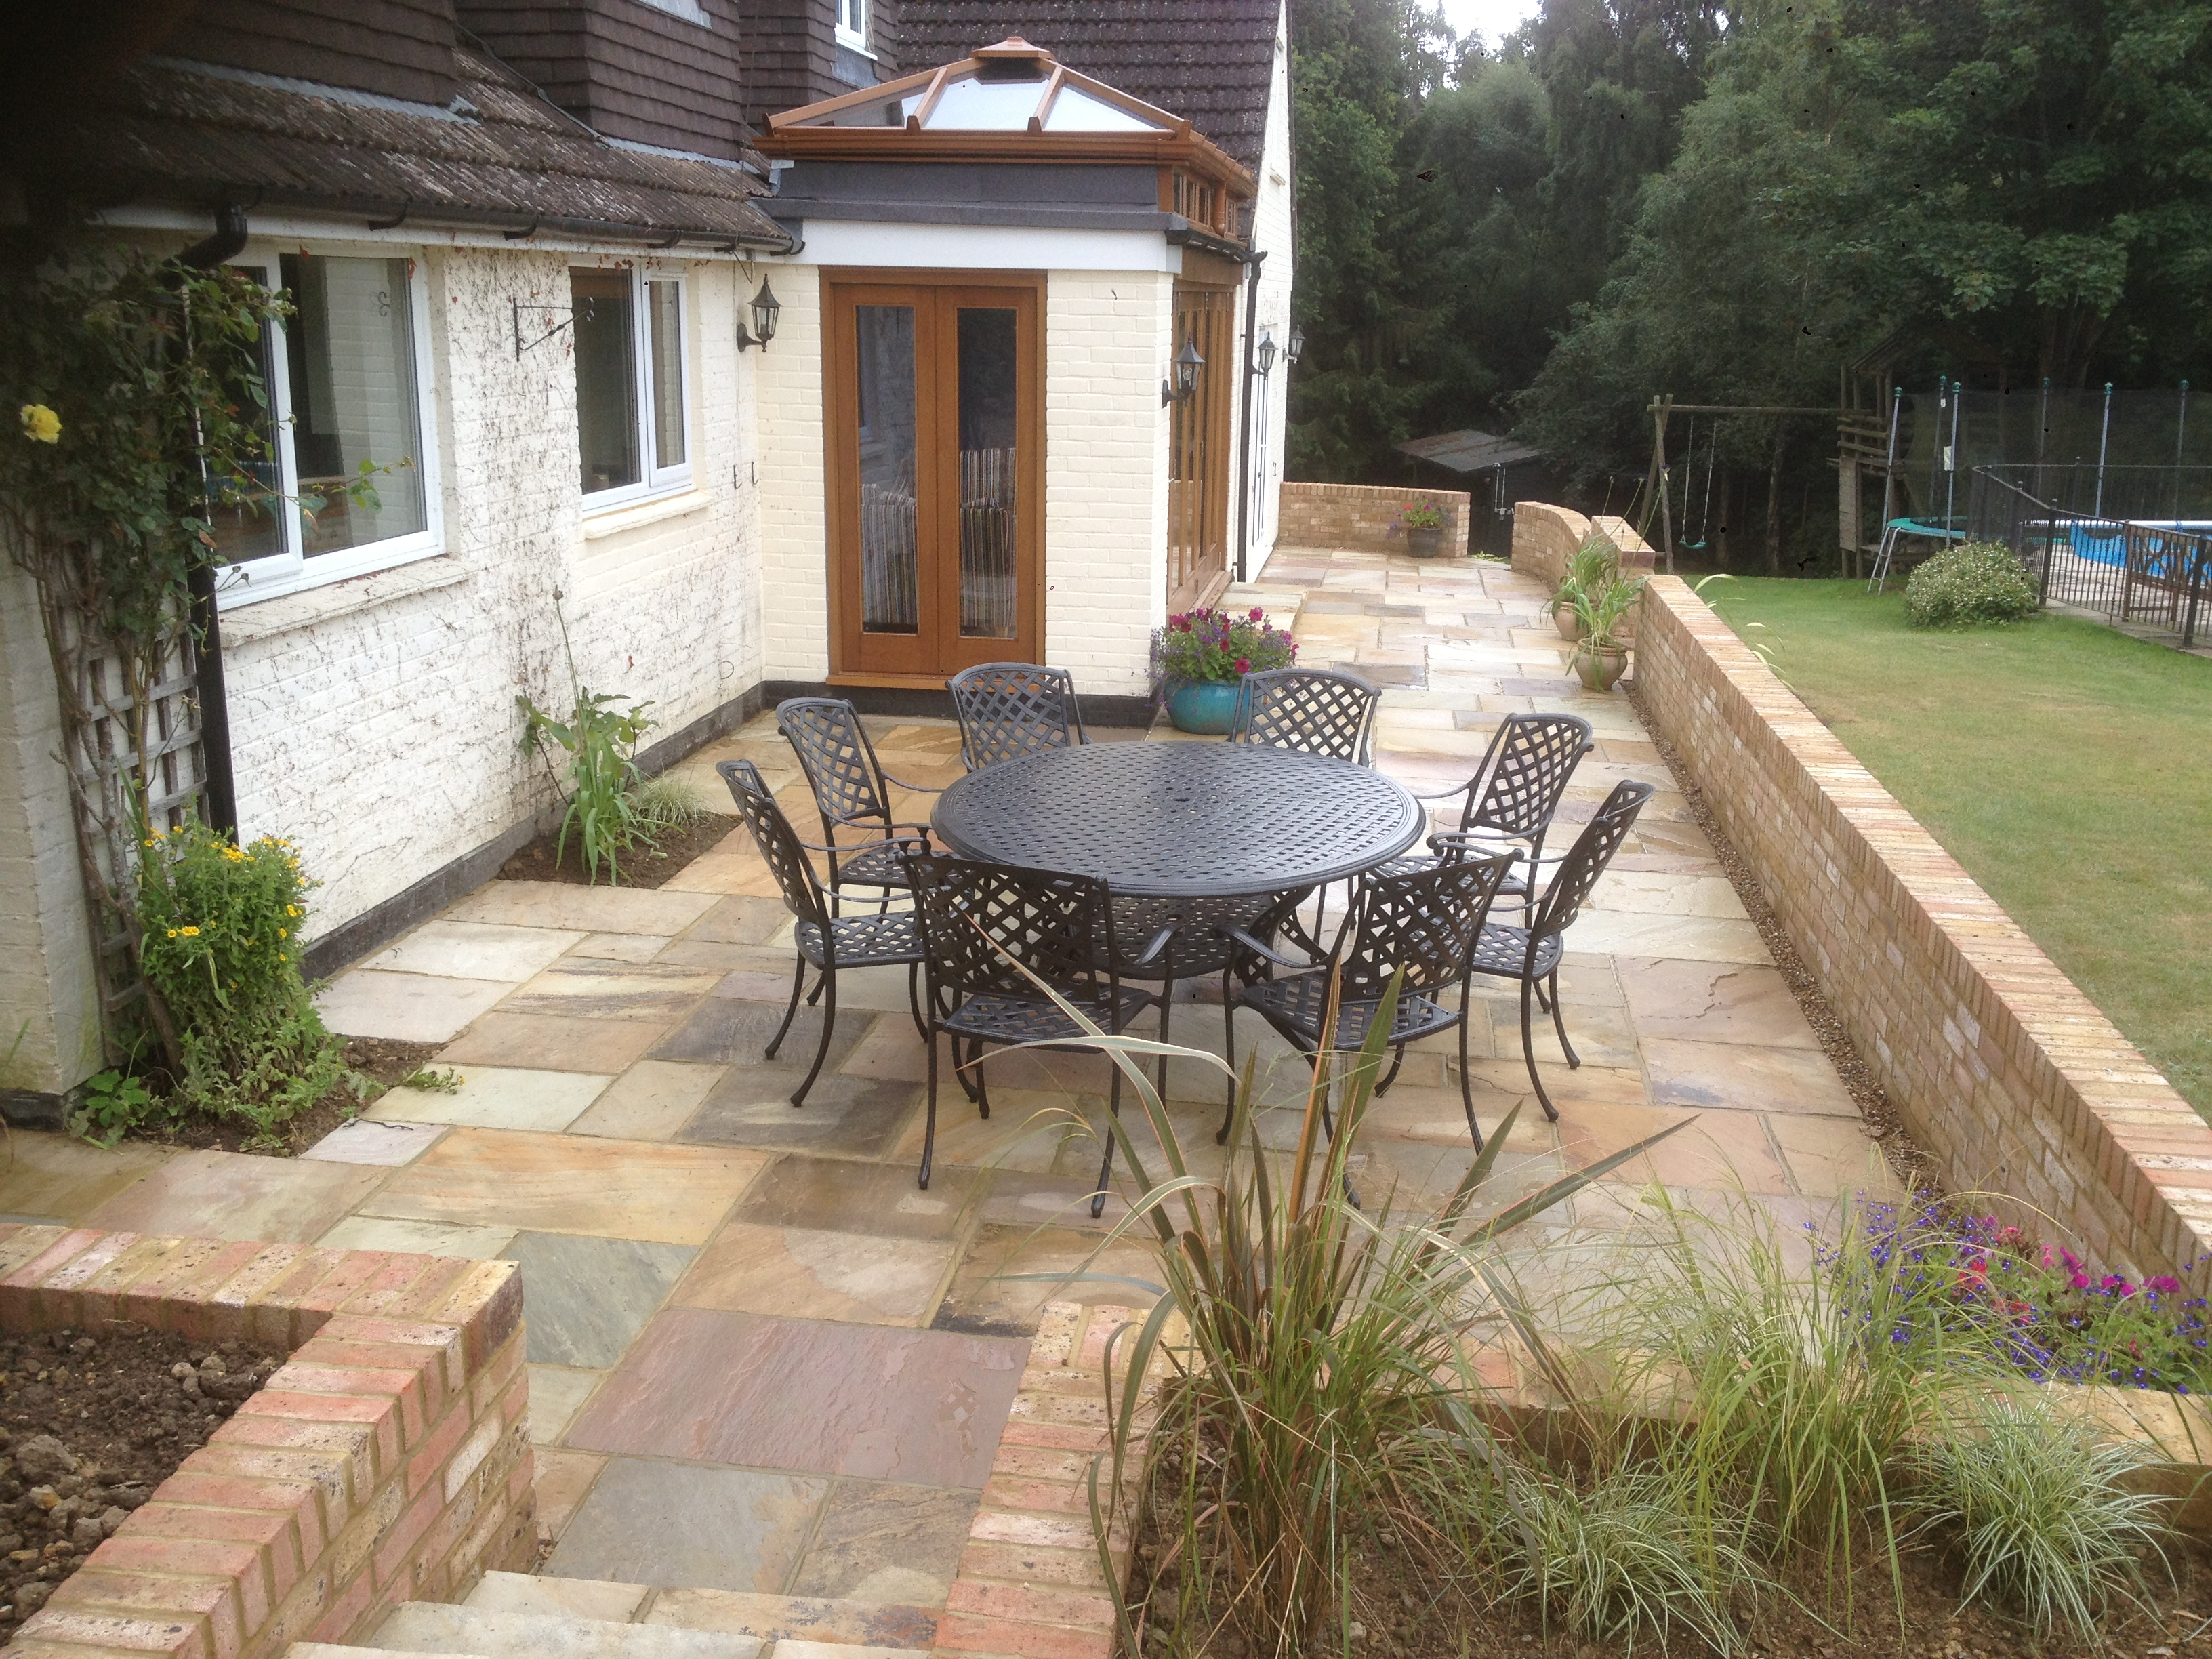 New patio and surrounding wall in horsham area